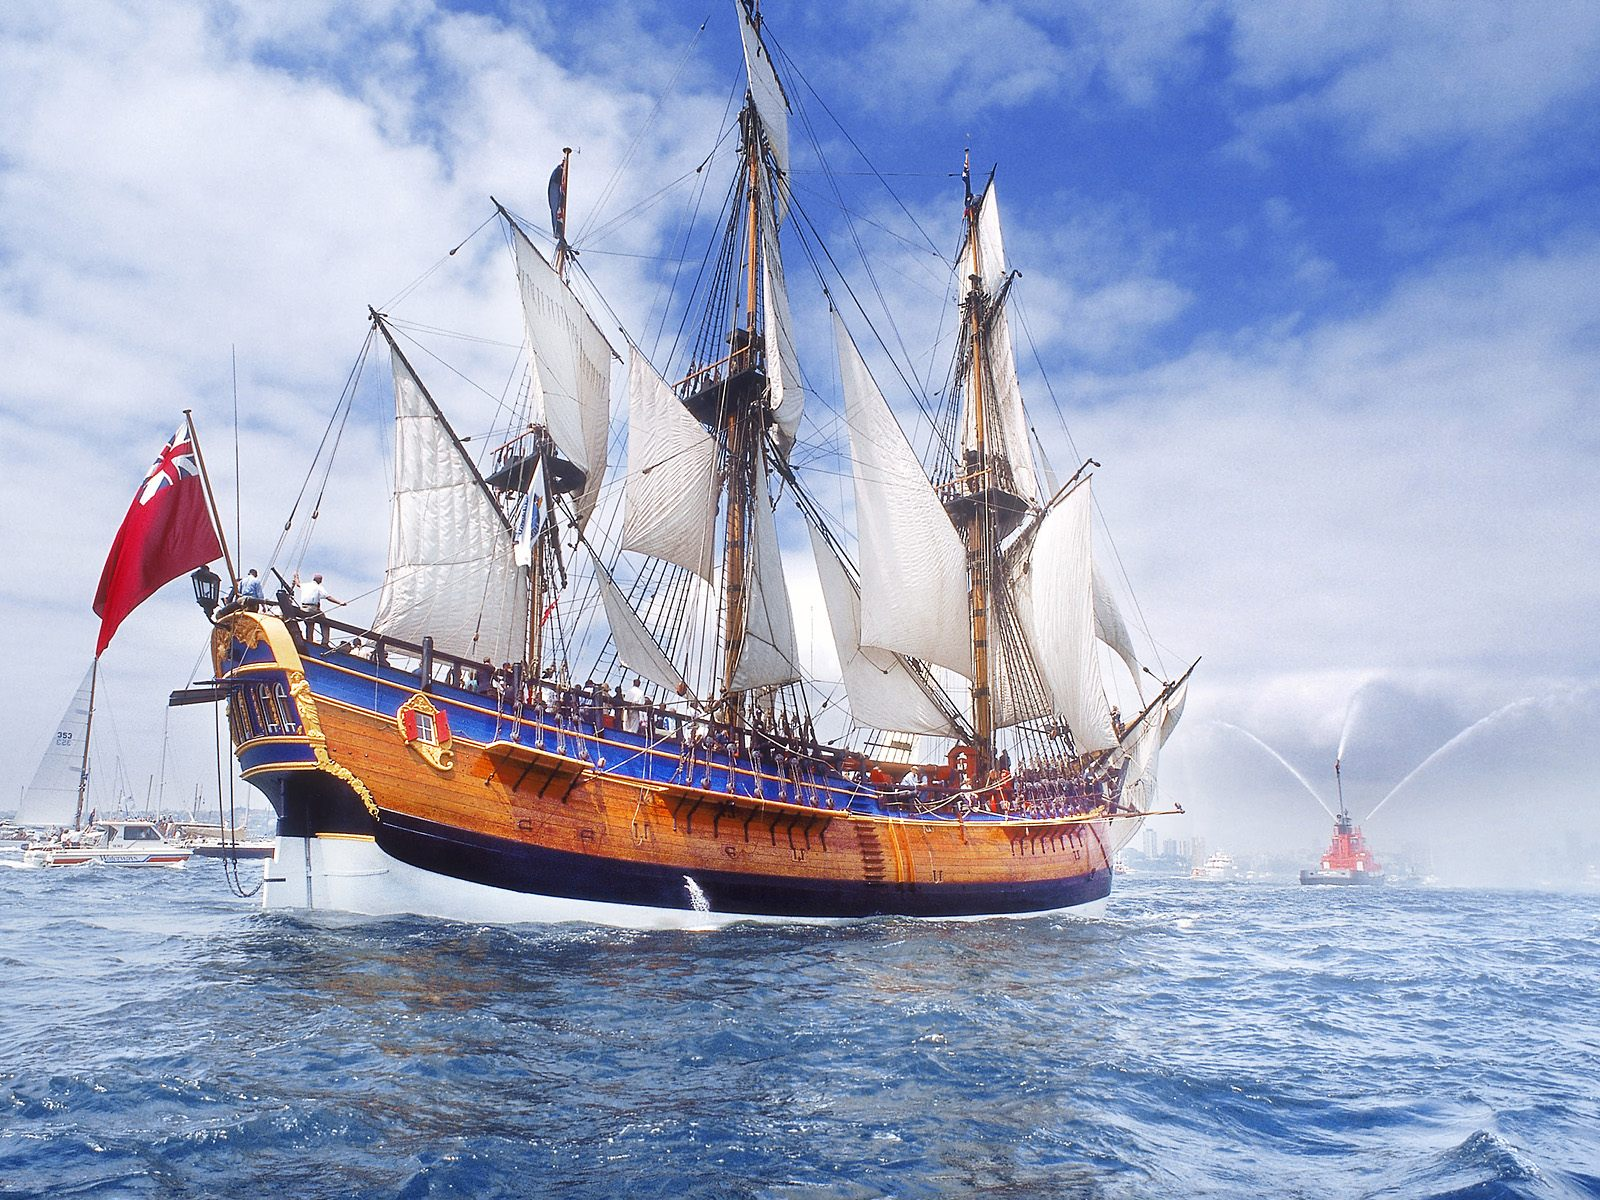 Replica of Endeavour on Sydney Harbor